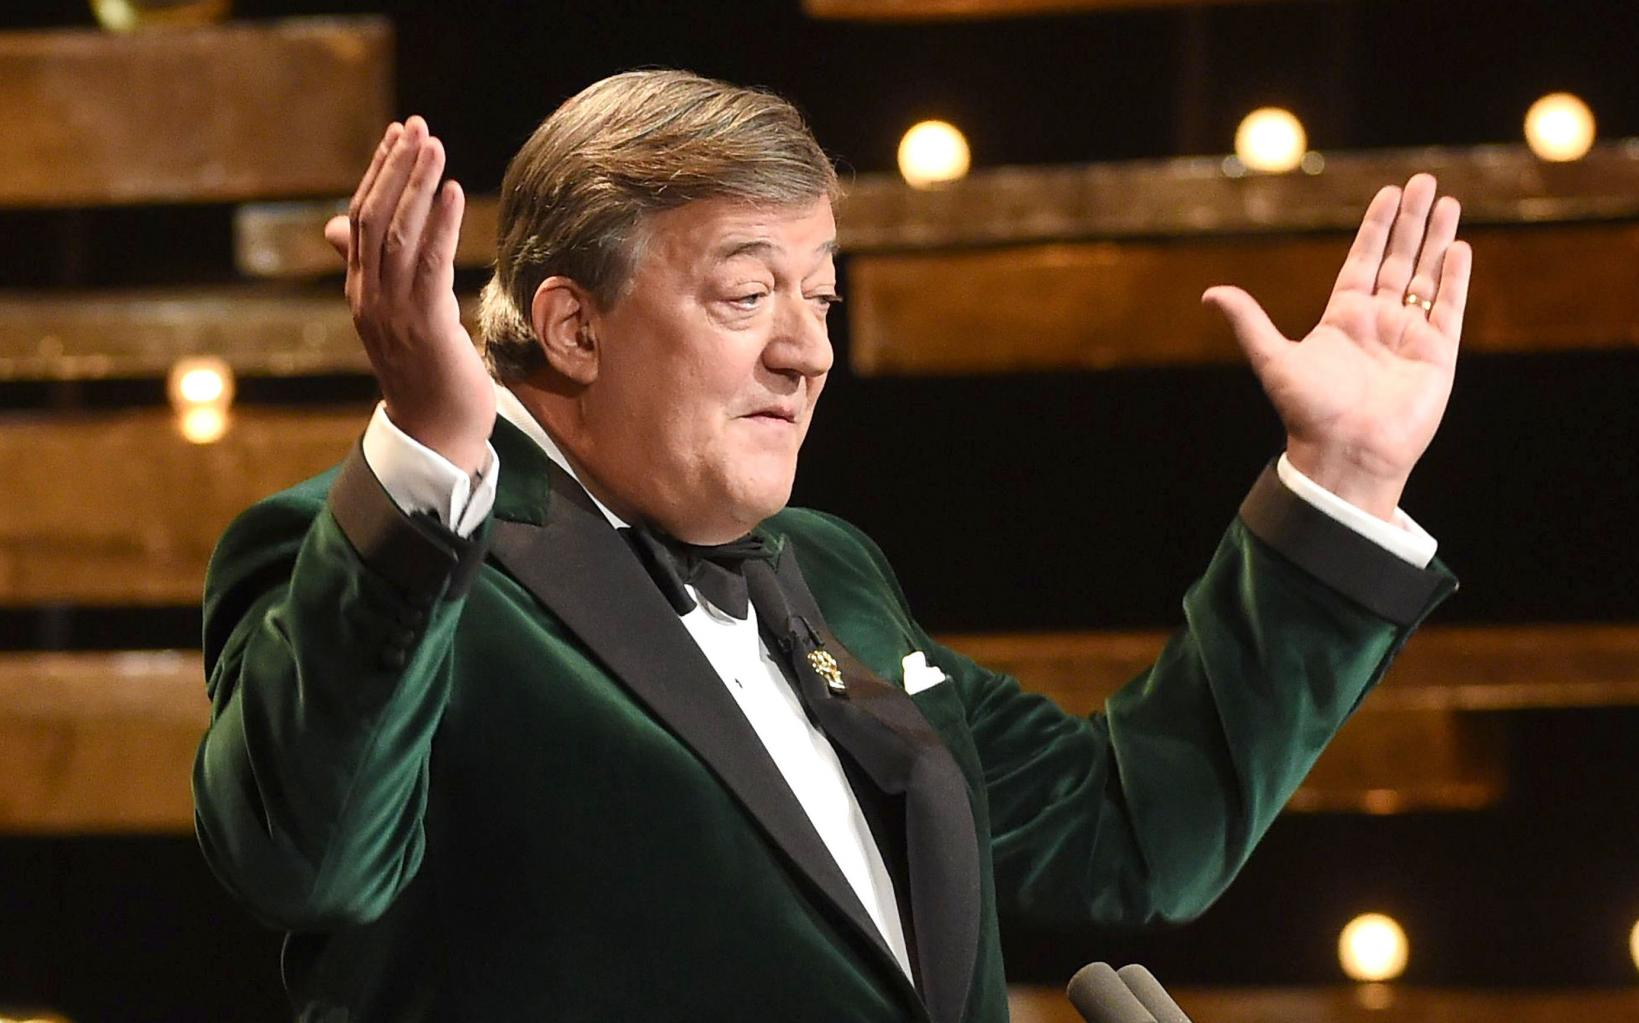 Comedian Stephen Fry Quits Twitter in Huff After Bag Lady Jo